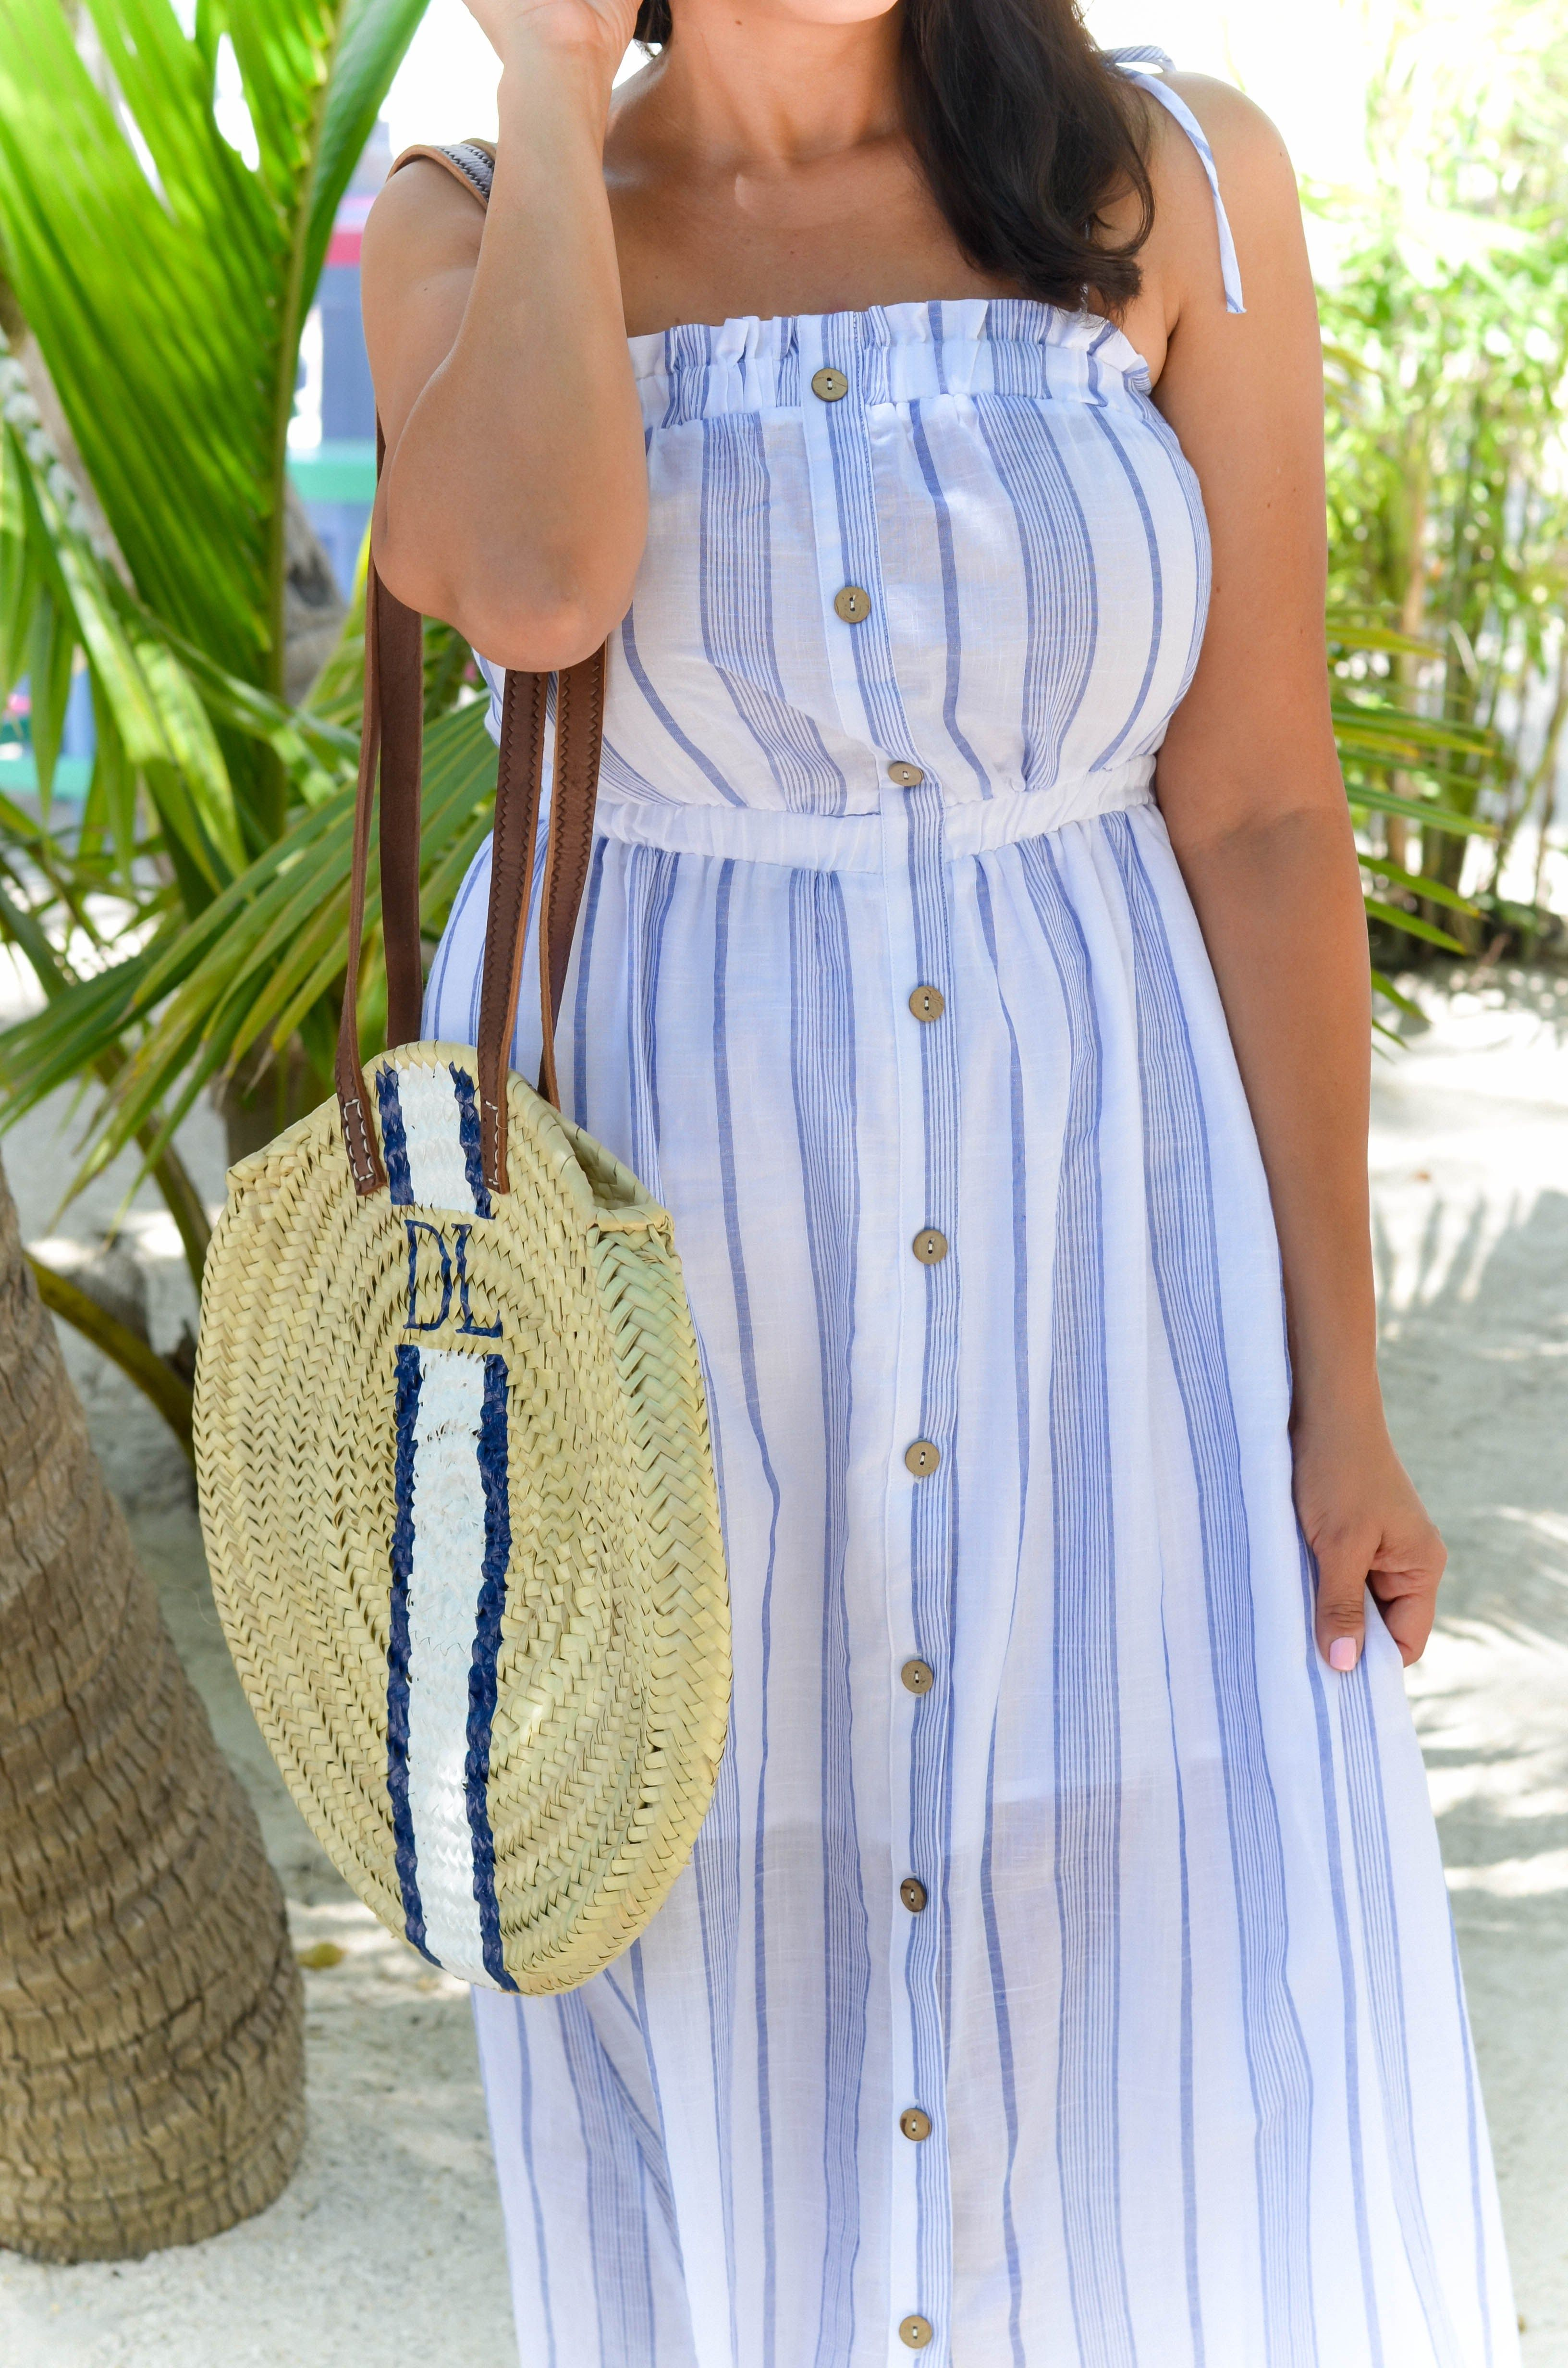 Blue And White Striped Summer Dress Beautifully Seaside Summer Dresses Striped Dress Summer Dresses [ 4928 x 3264 Pixel ]